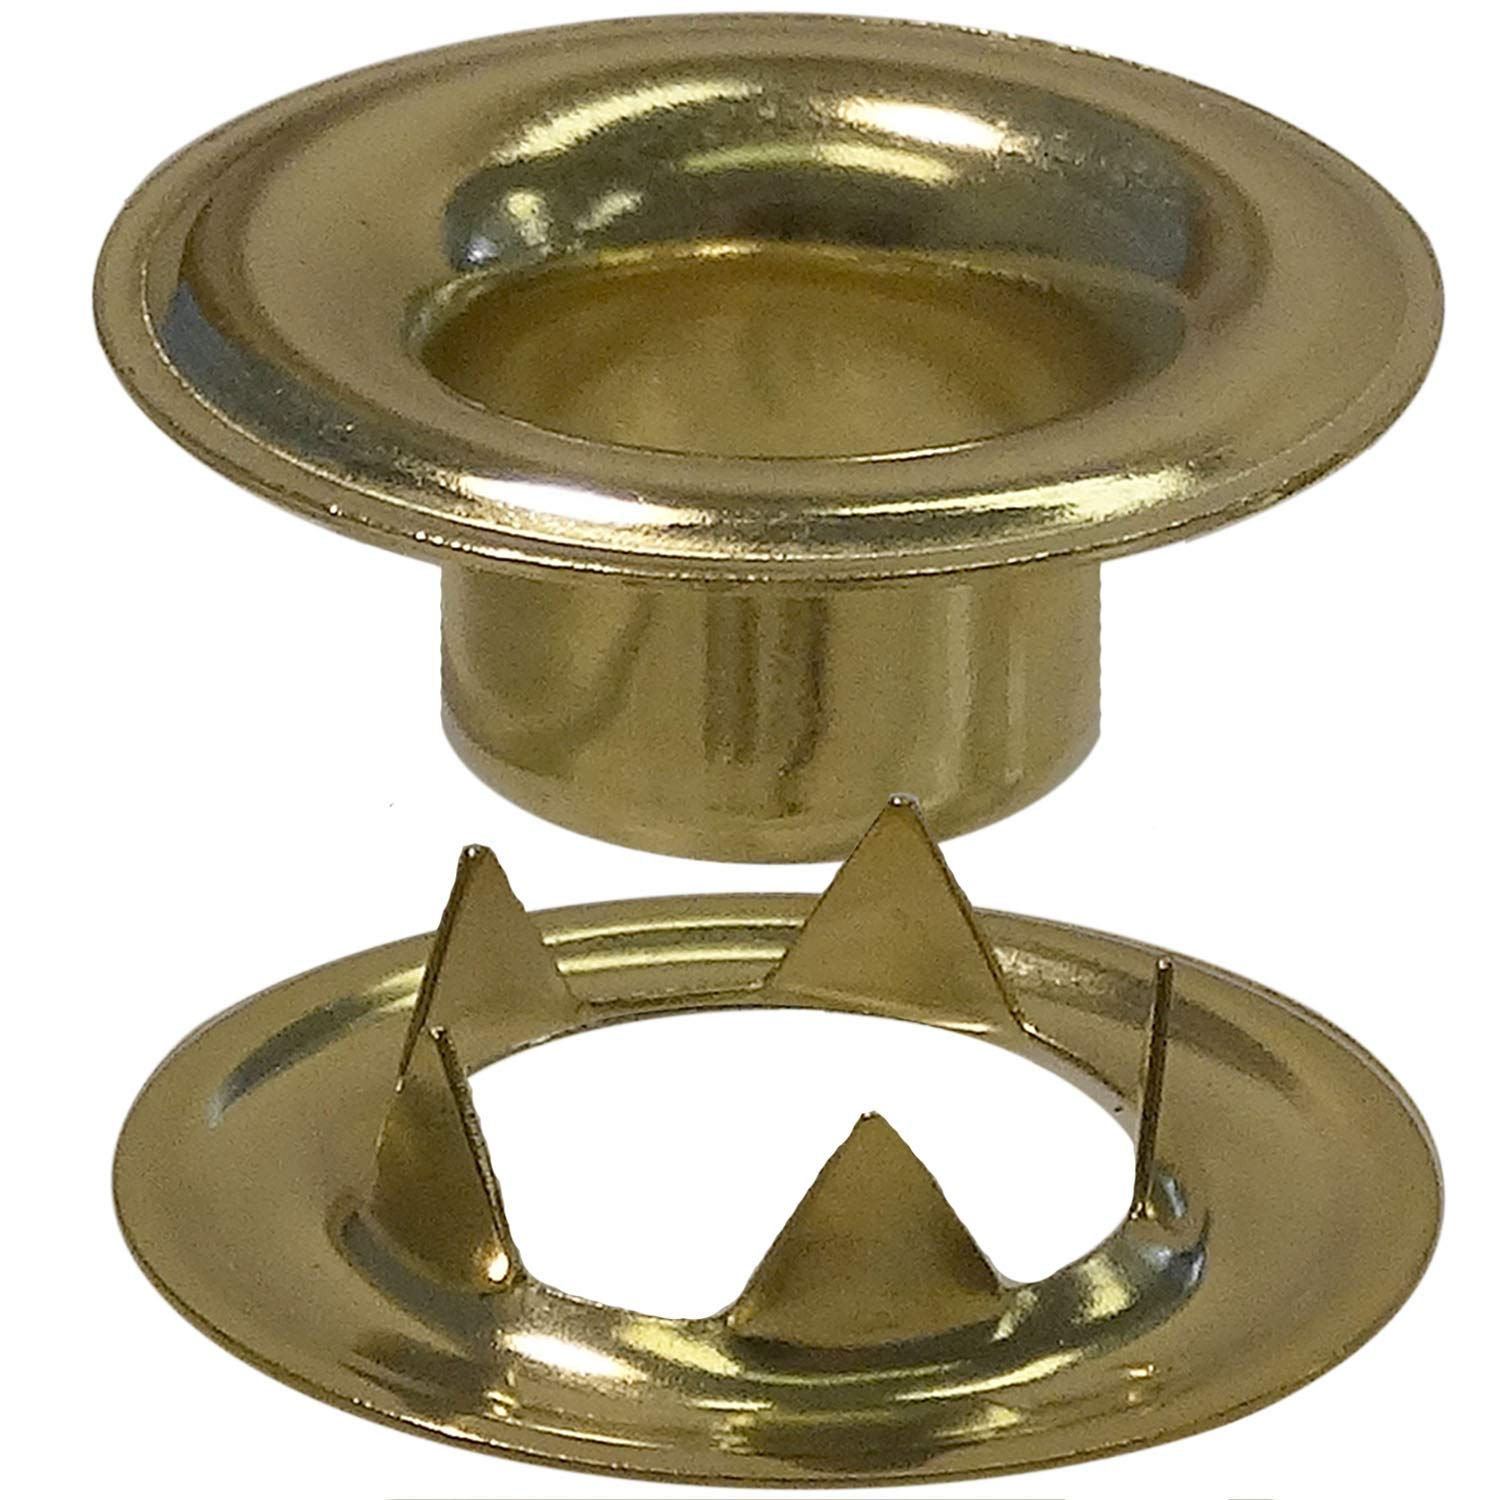 Stimpson Sheet Metal Grommet and Teeth Washer Brass Durable, Reliable, Heavy-Duty #4 Set (1,440 pieces of each)